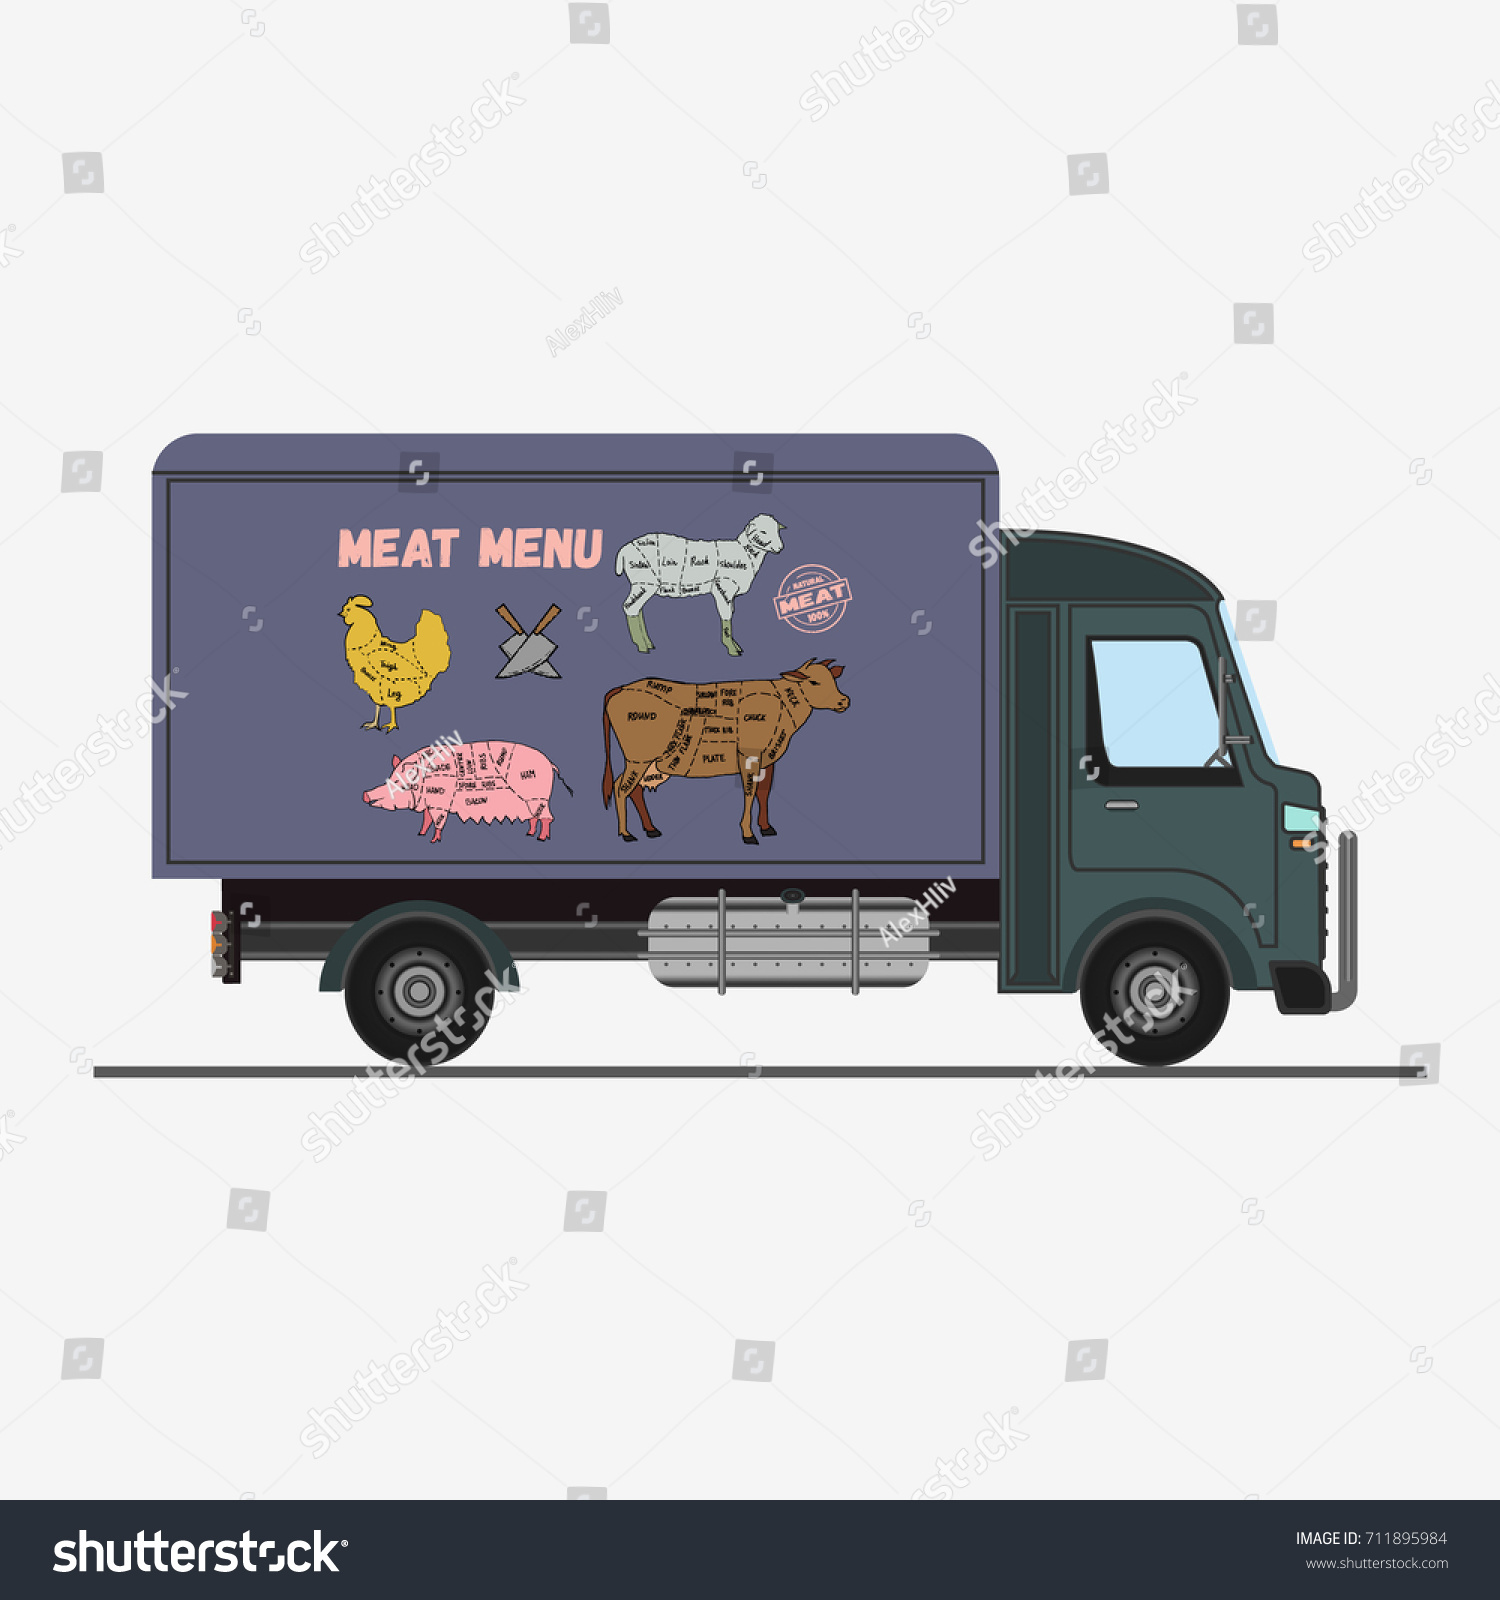 Types Of Meat Delivery Chicken Broiler Beef Pork Lamb